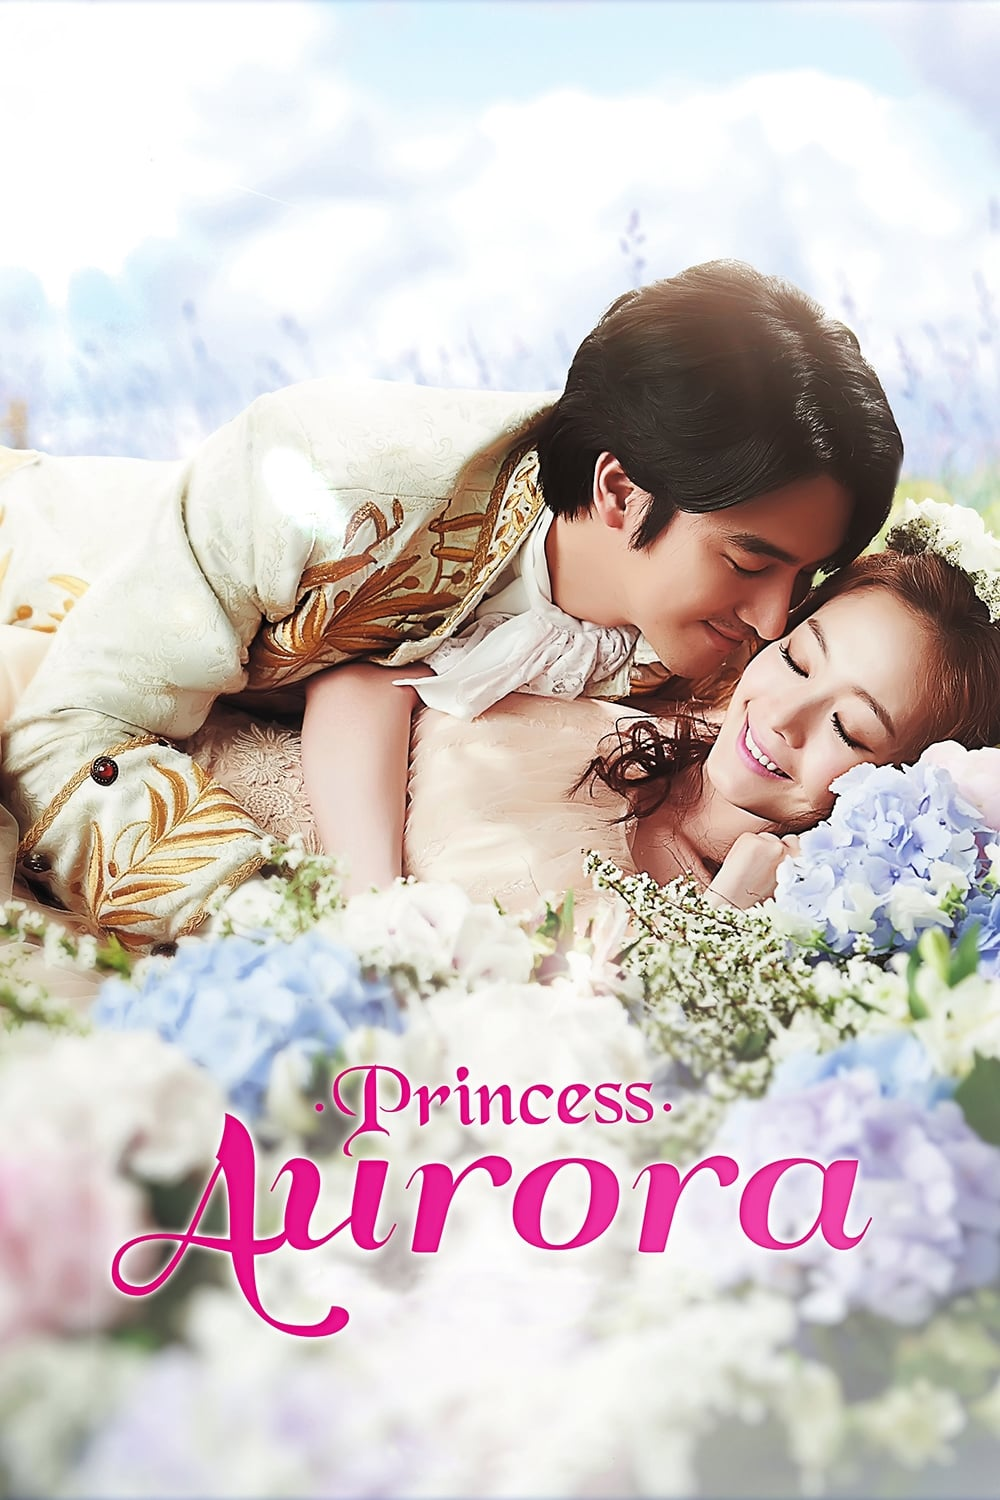 Princess Aurora (2013)